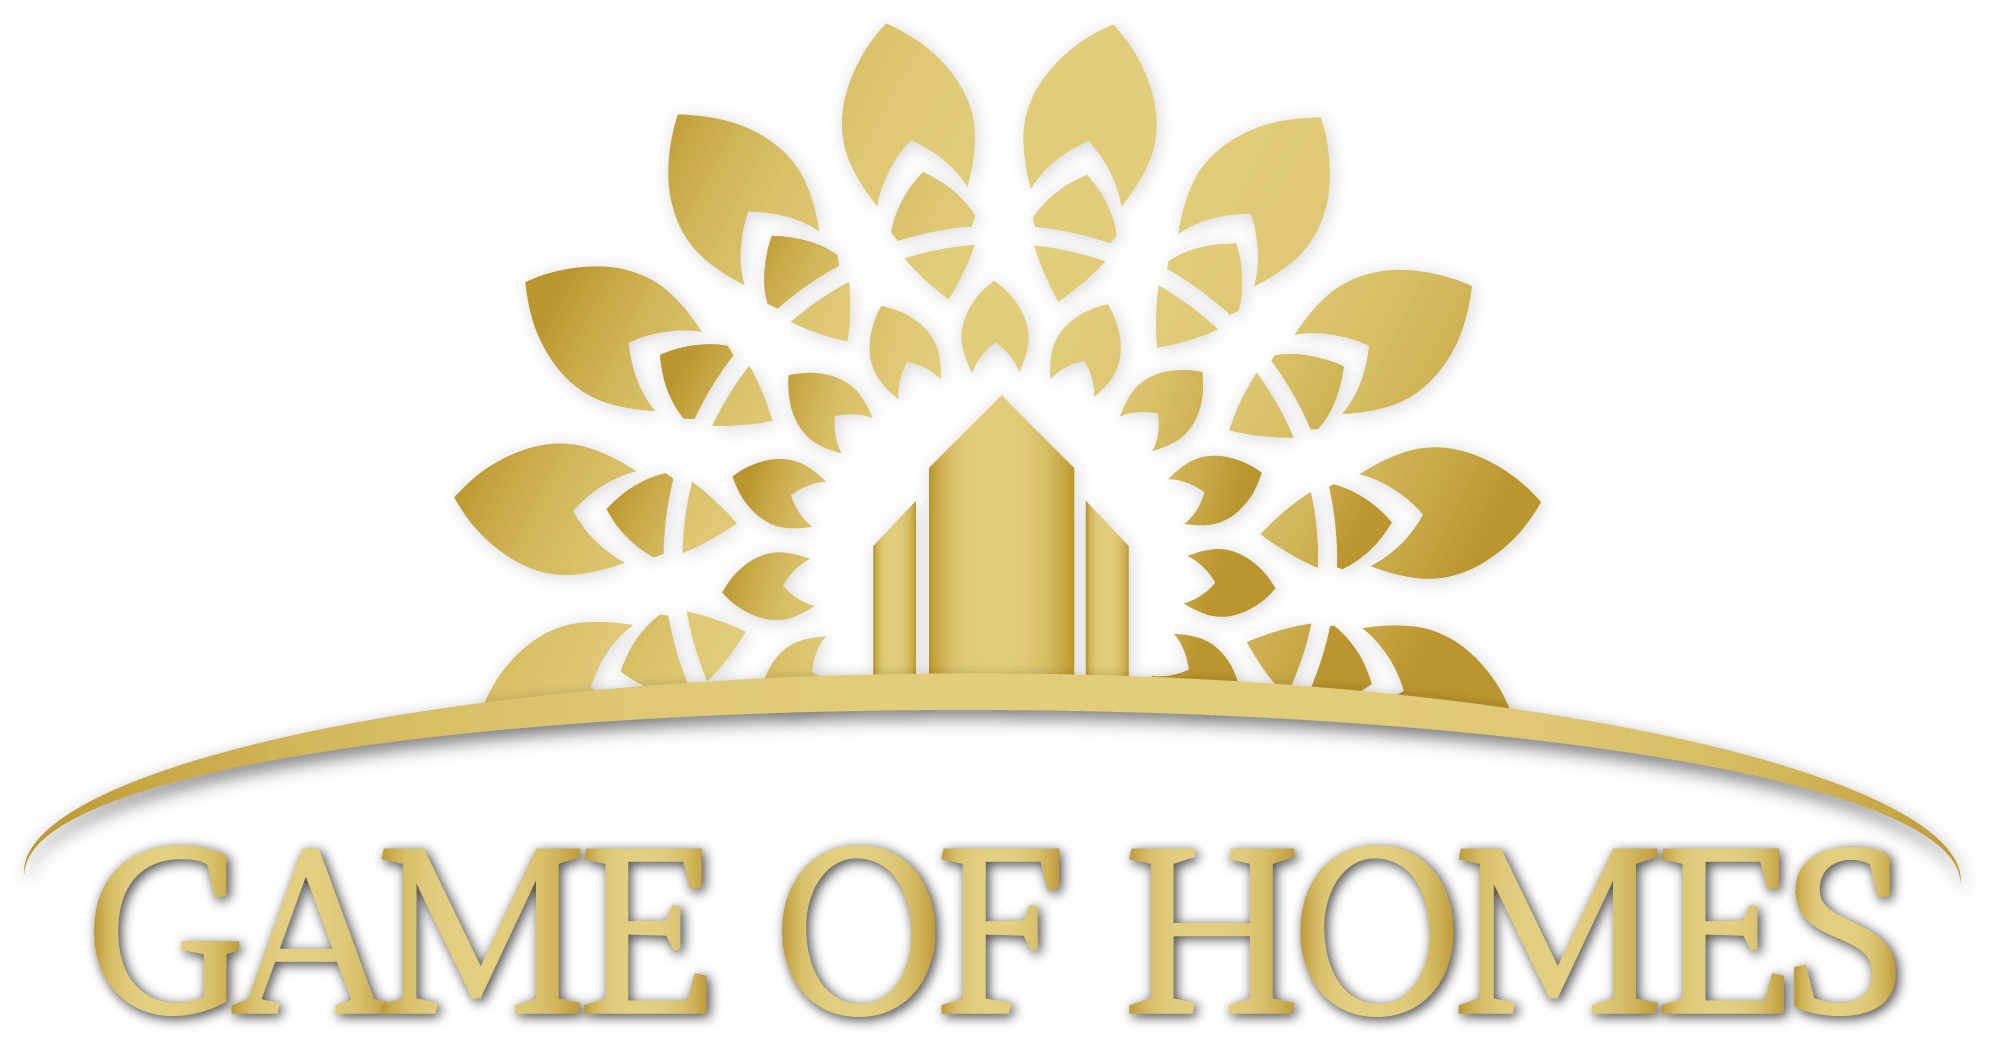 Proiect: Game of Homes